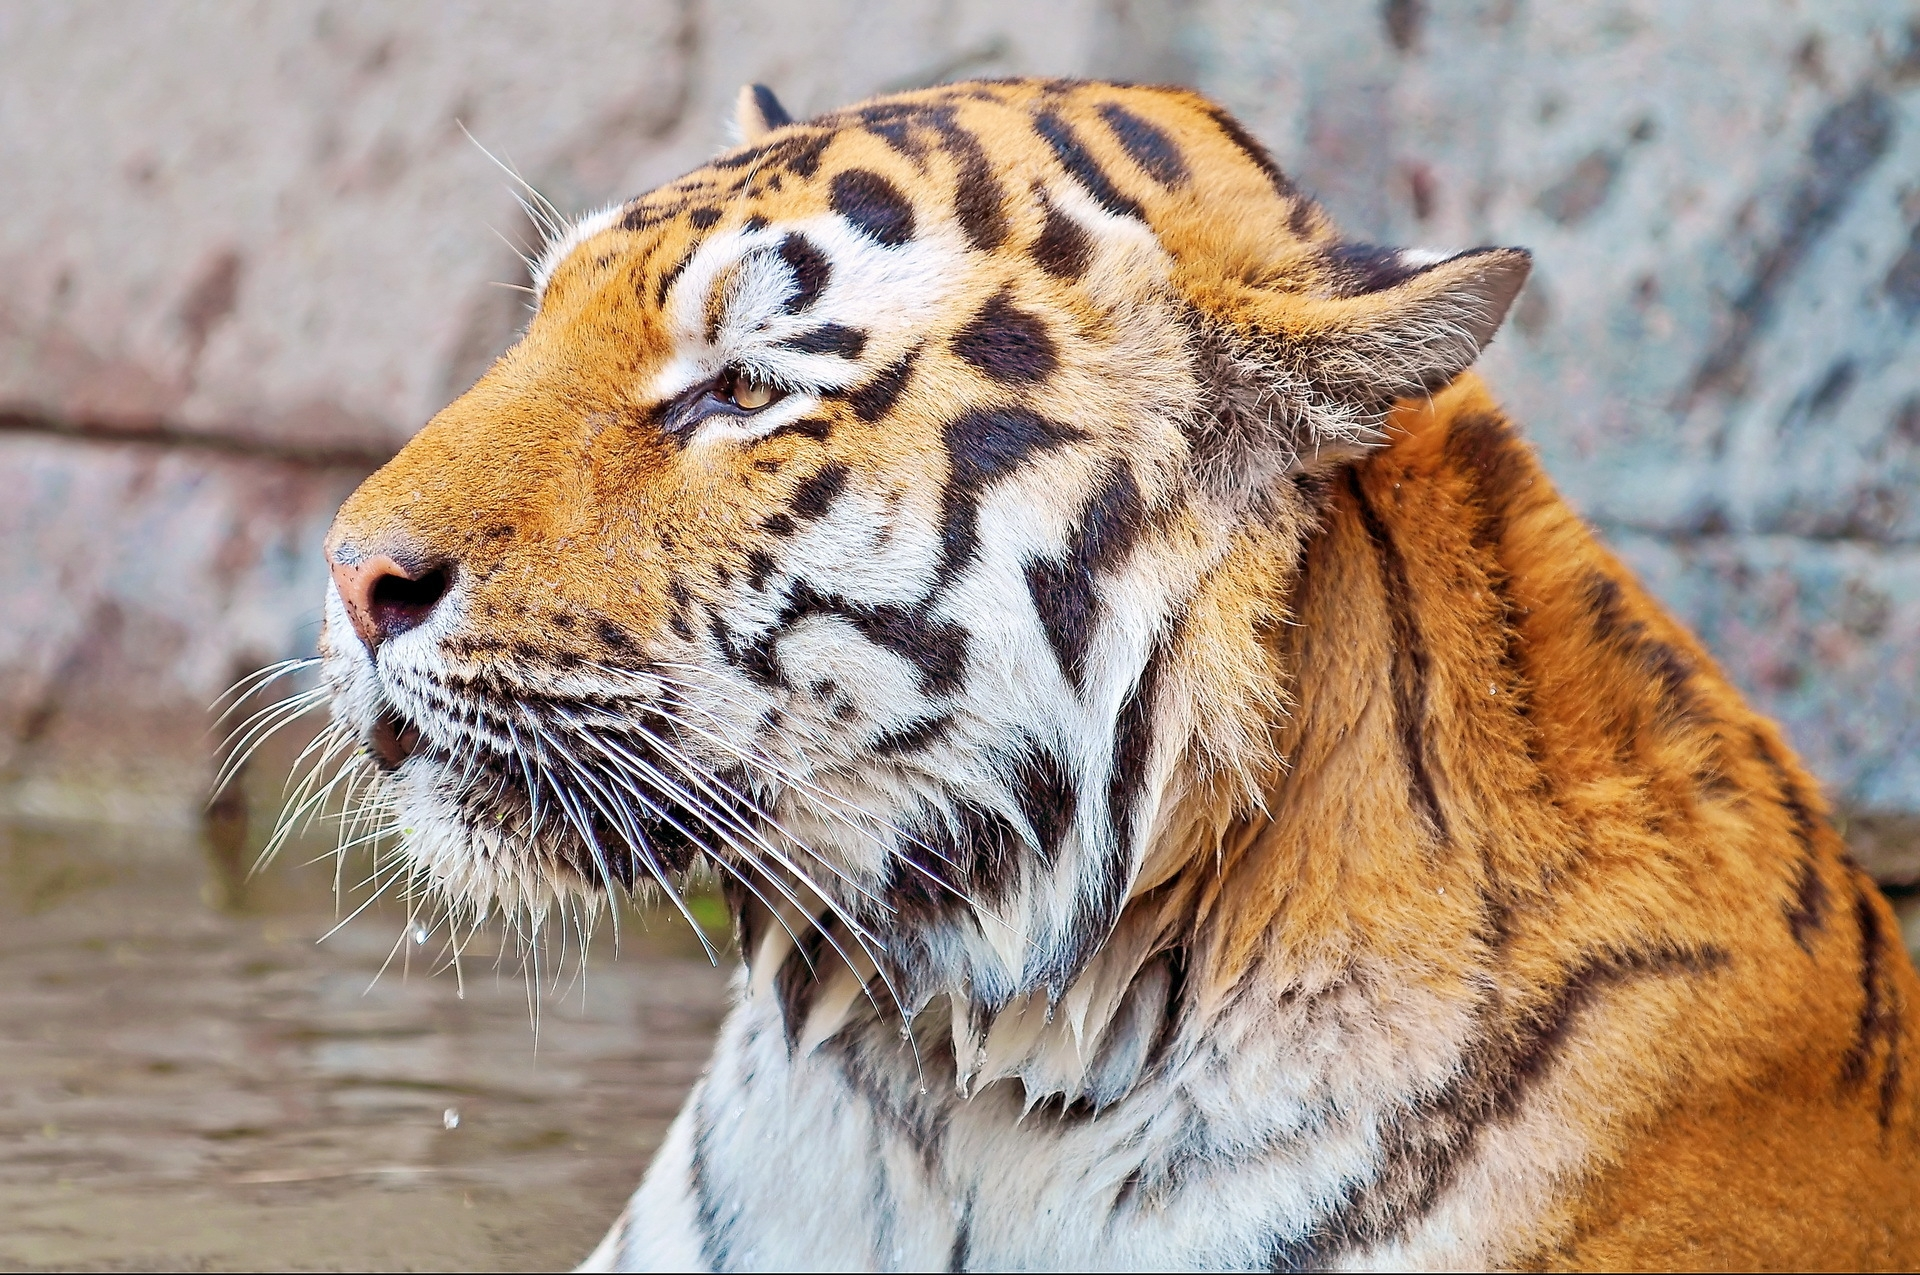 98651 download wallpaper Animals, Tiger, Muzzle, Striped, Predator screensavers and pictures for free